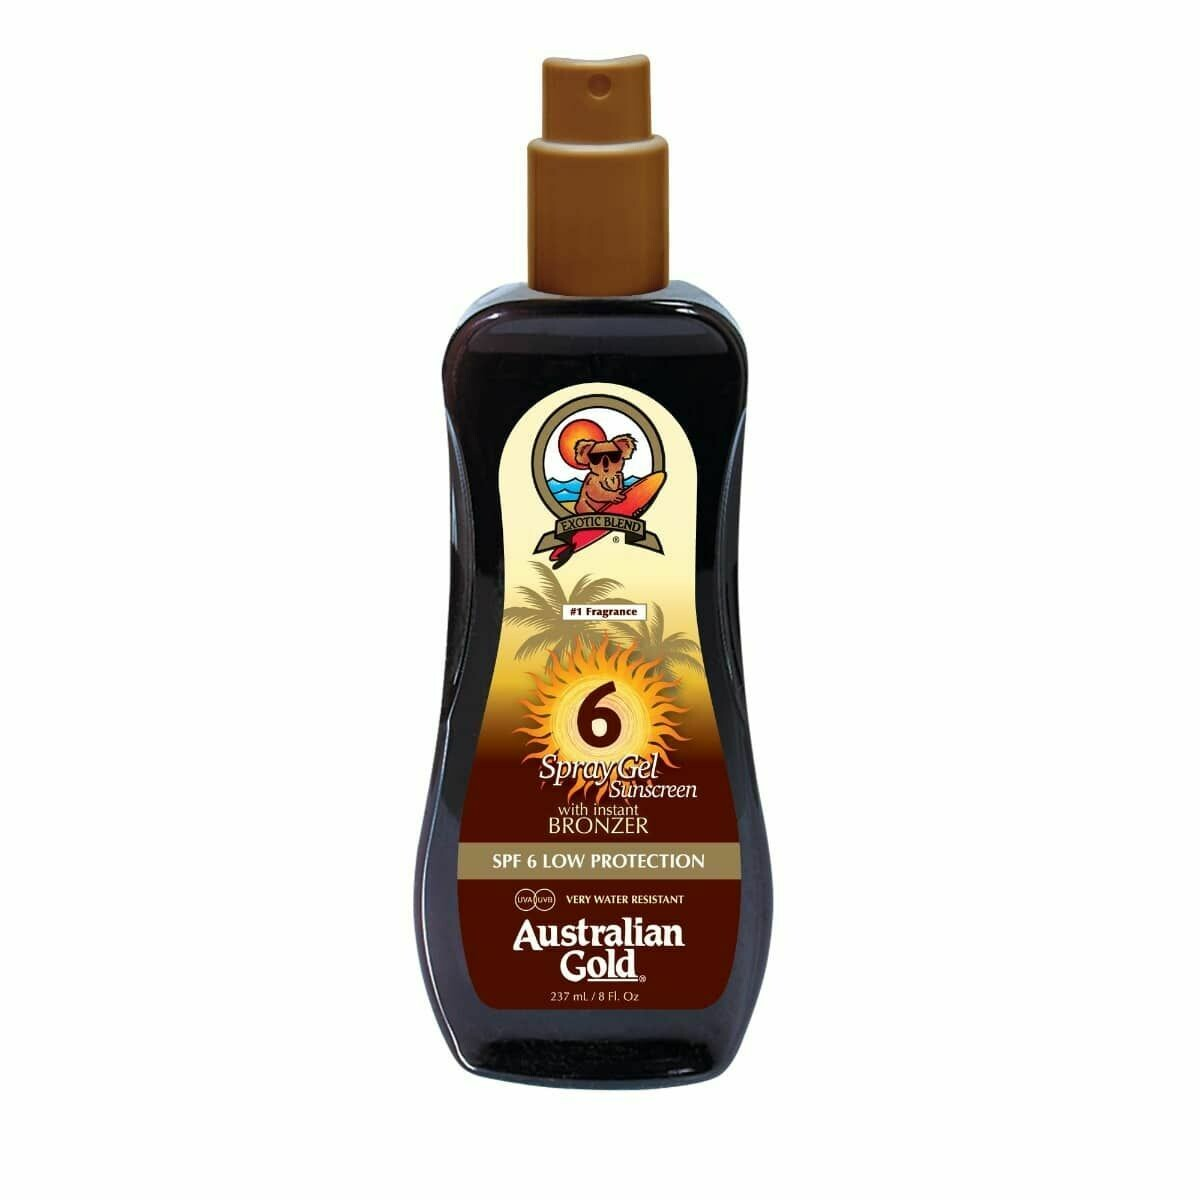 Australian Gold Botanical Spf 6 Spray Gel with Bronzer 237ml - Cocoa Dreams